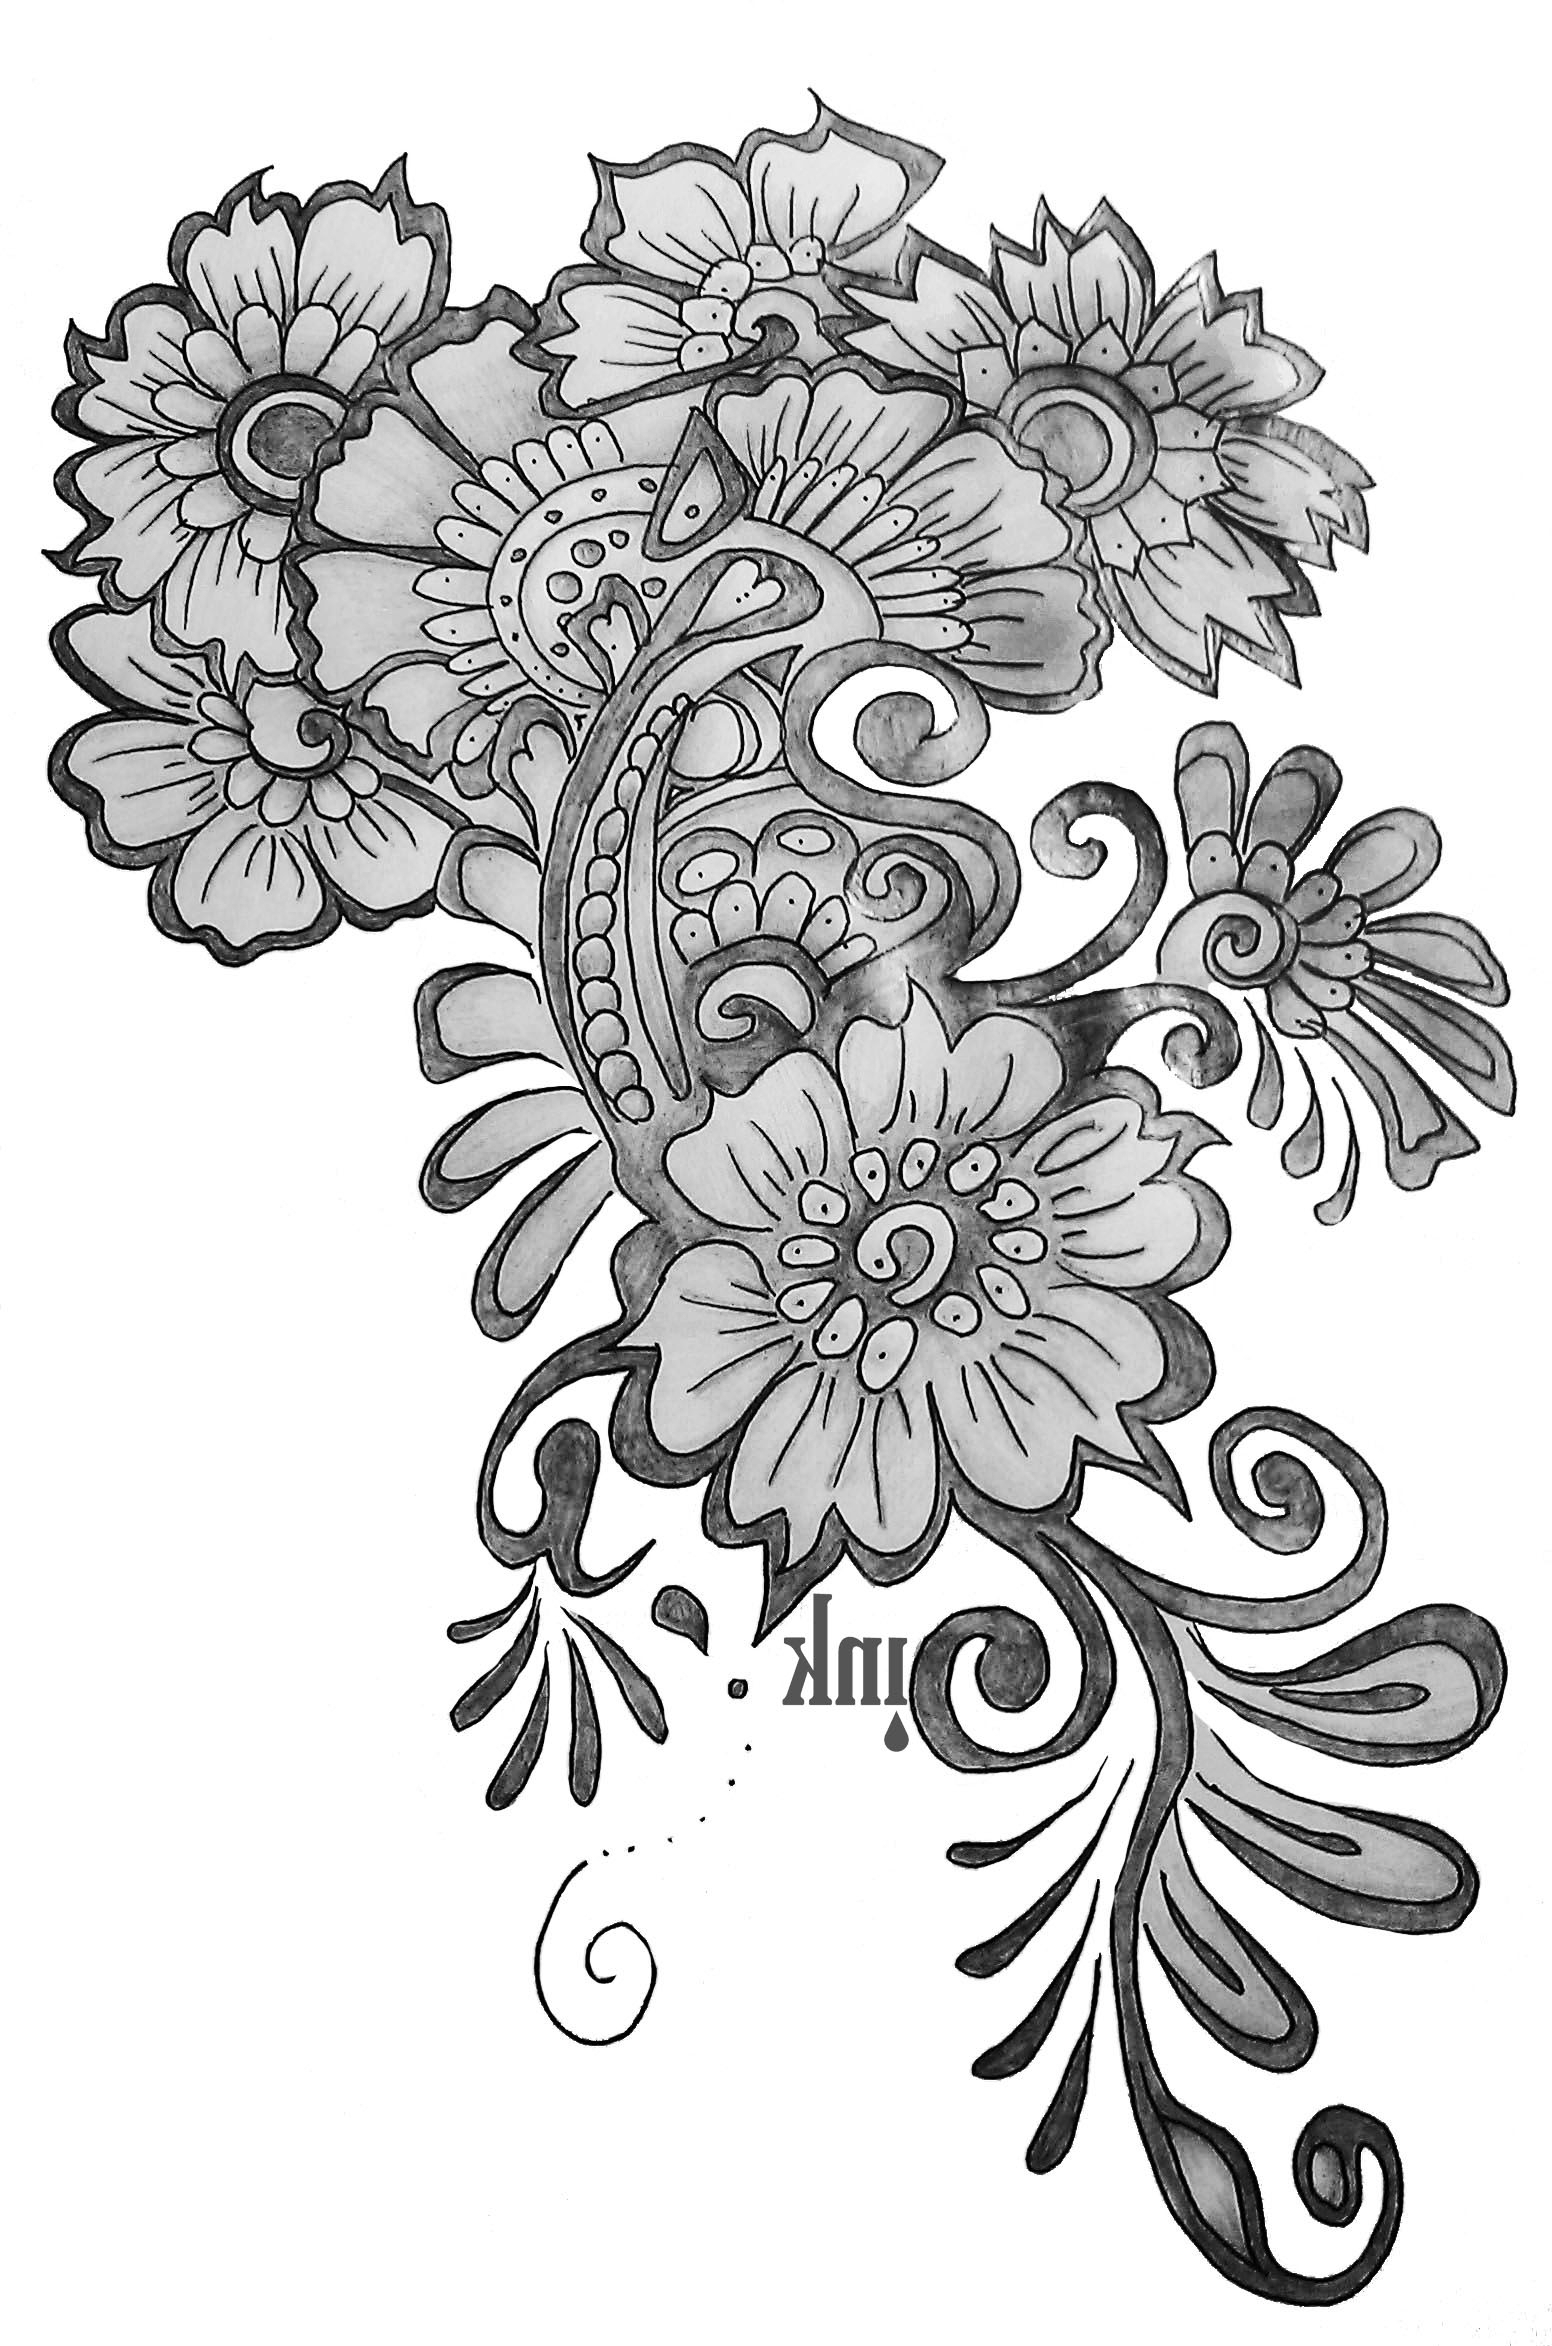 1552x2346 Simple Flower Designs For Pencil Drawing Pencil Sketch Of Flower